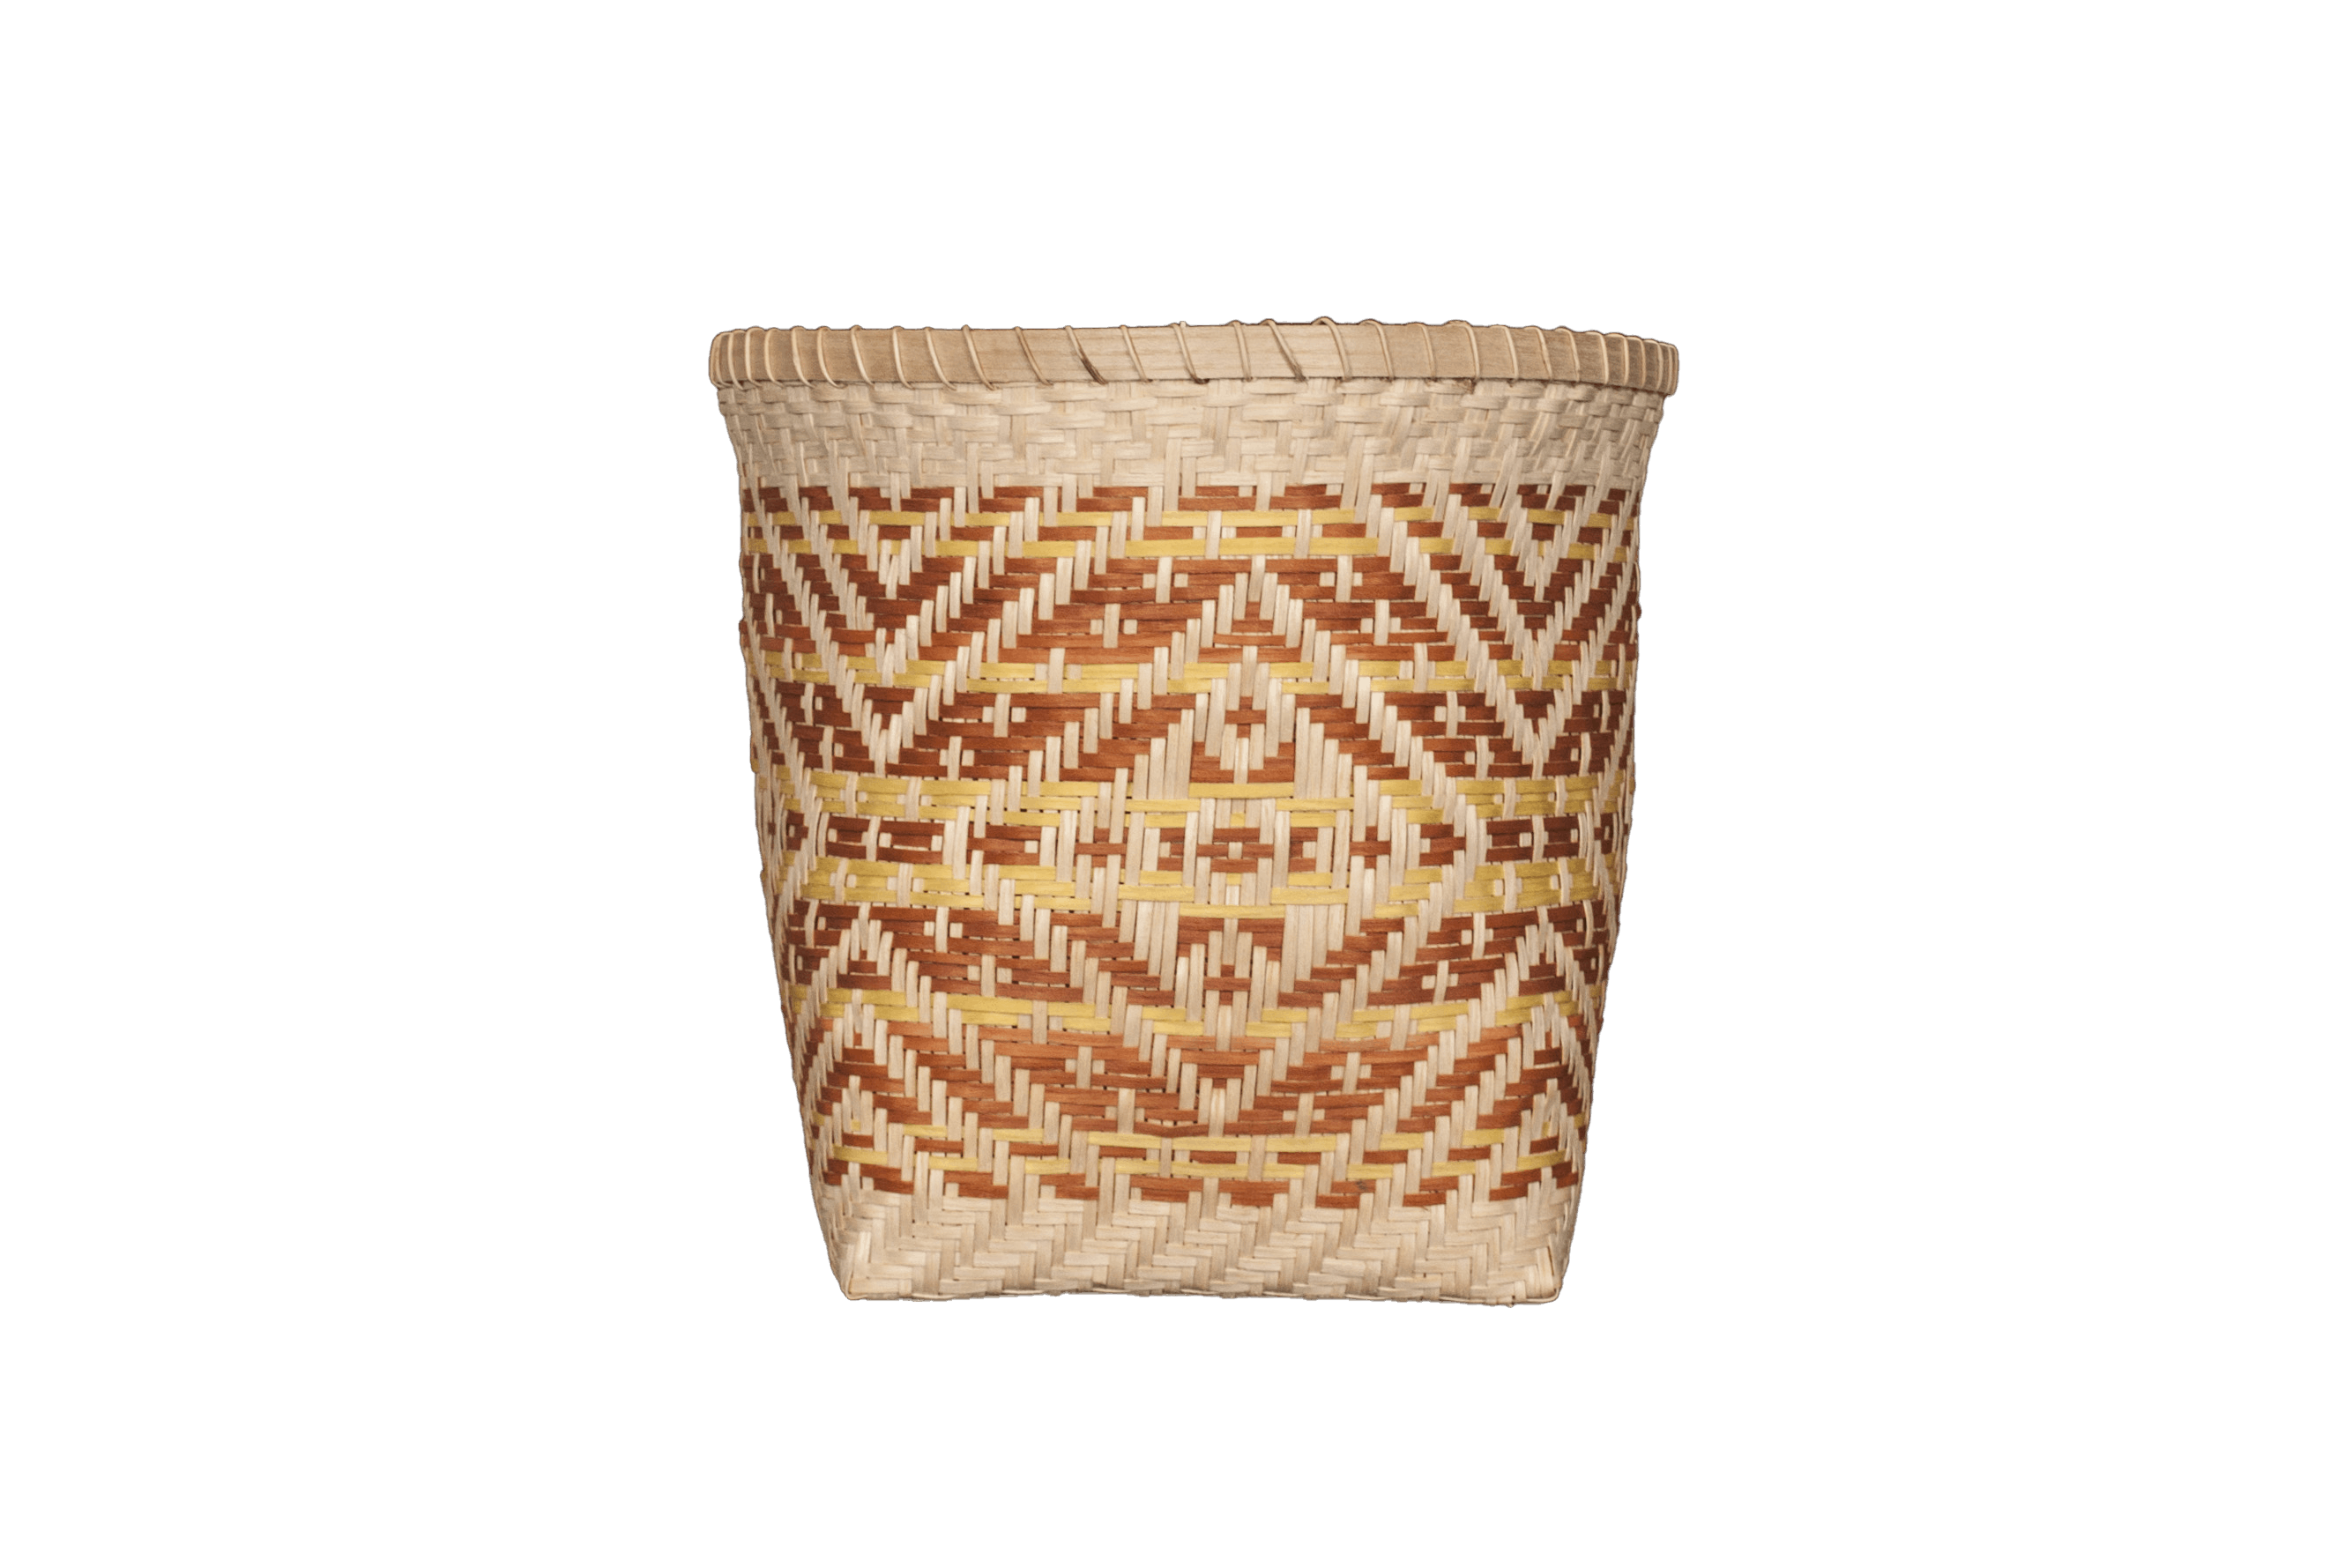 Basket created by Mike Dart from Cherokee Nation